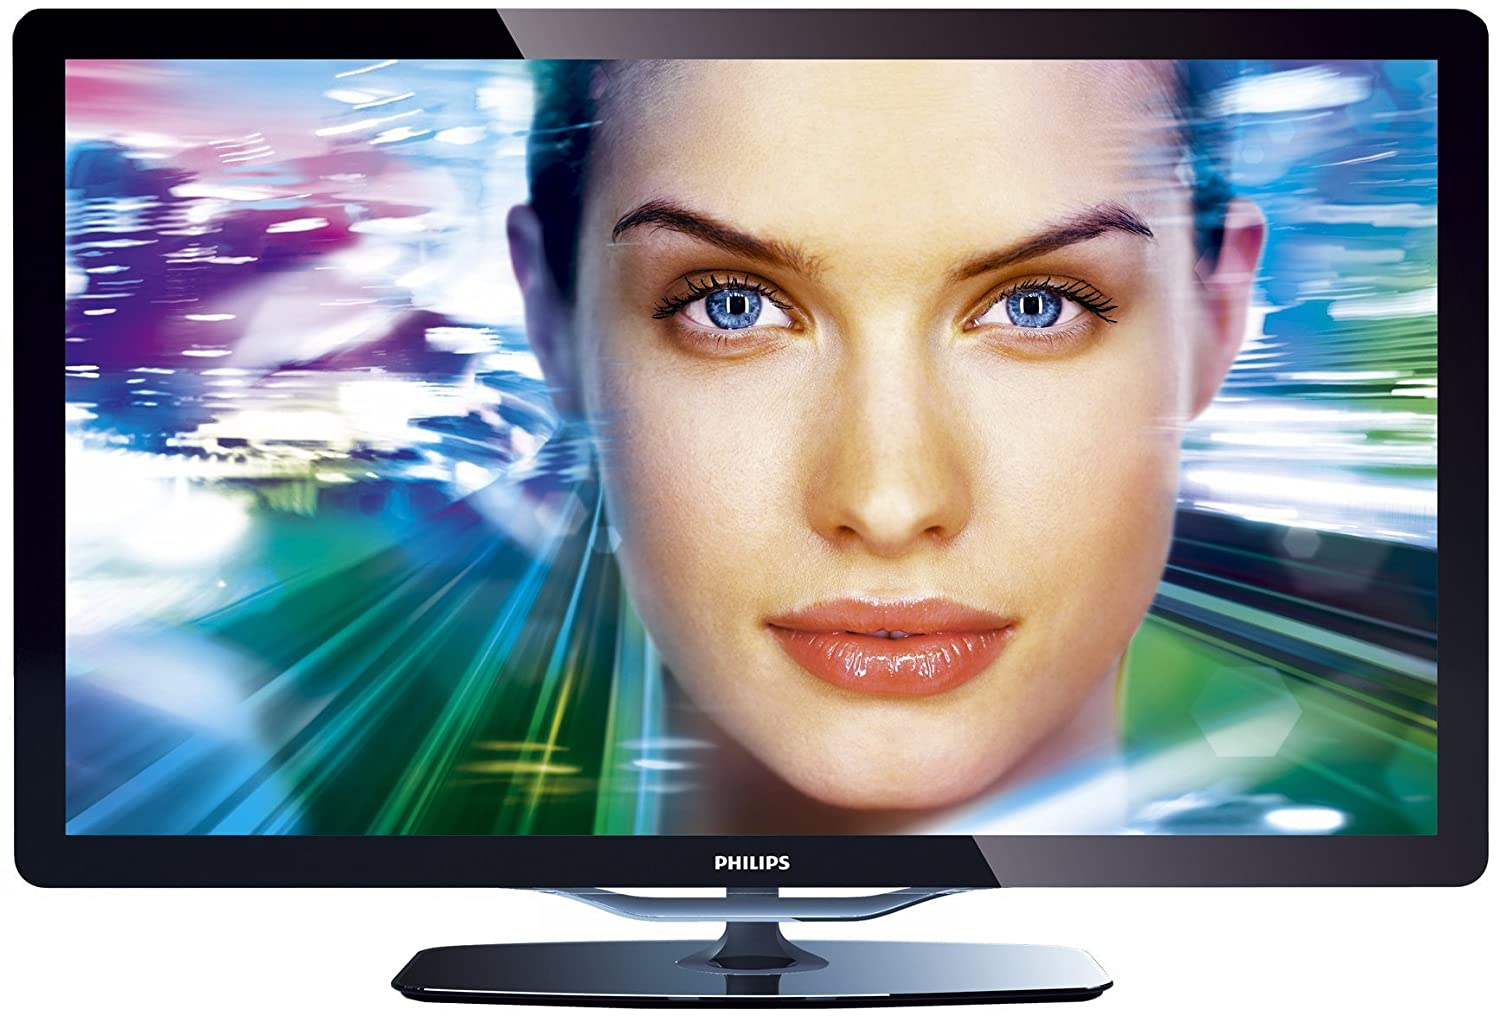 Philips 46PFL8605H/12 46-inch Widescreen 3D Ready Full HD